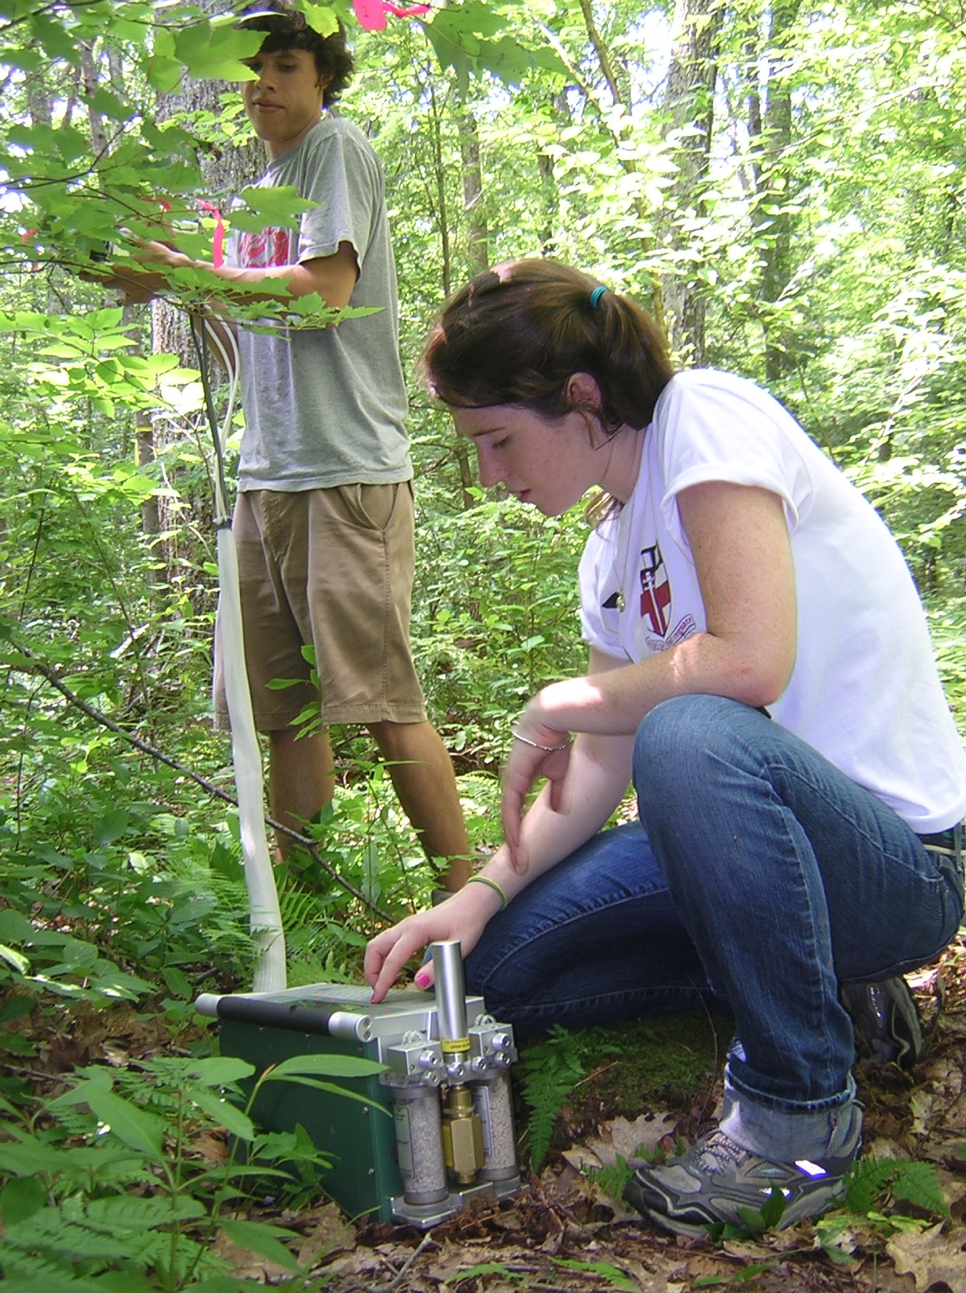 Fiona Jevin conducting research as an REU student at Harvard Forest in 2010.